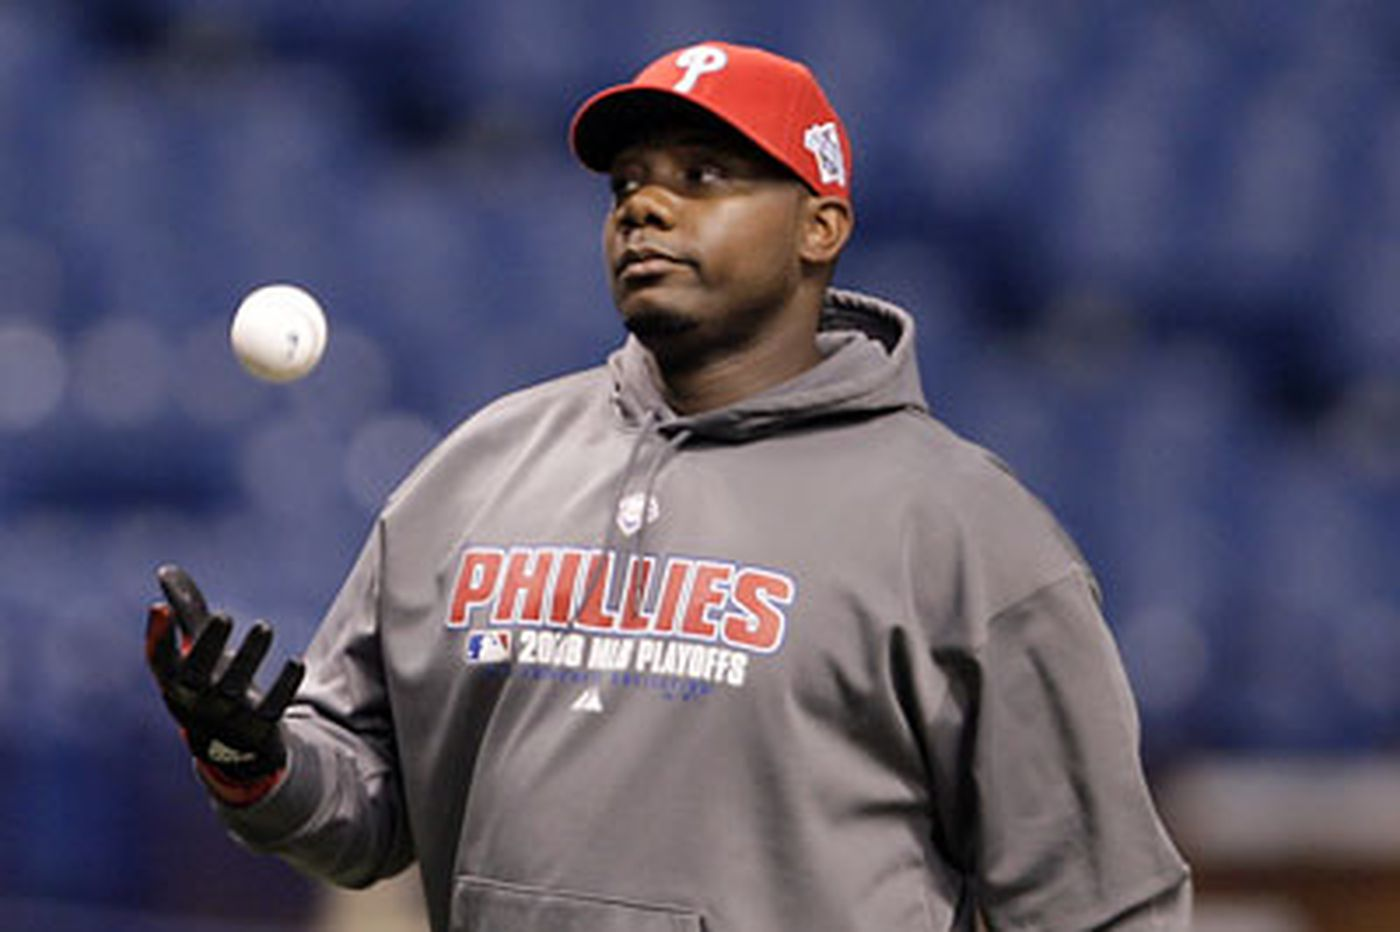 Phils meet with Howard's agent